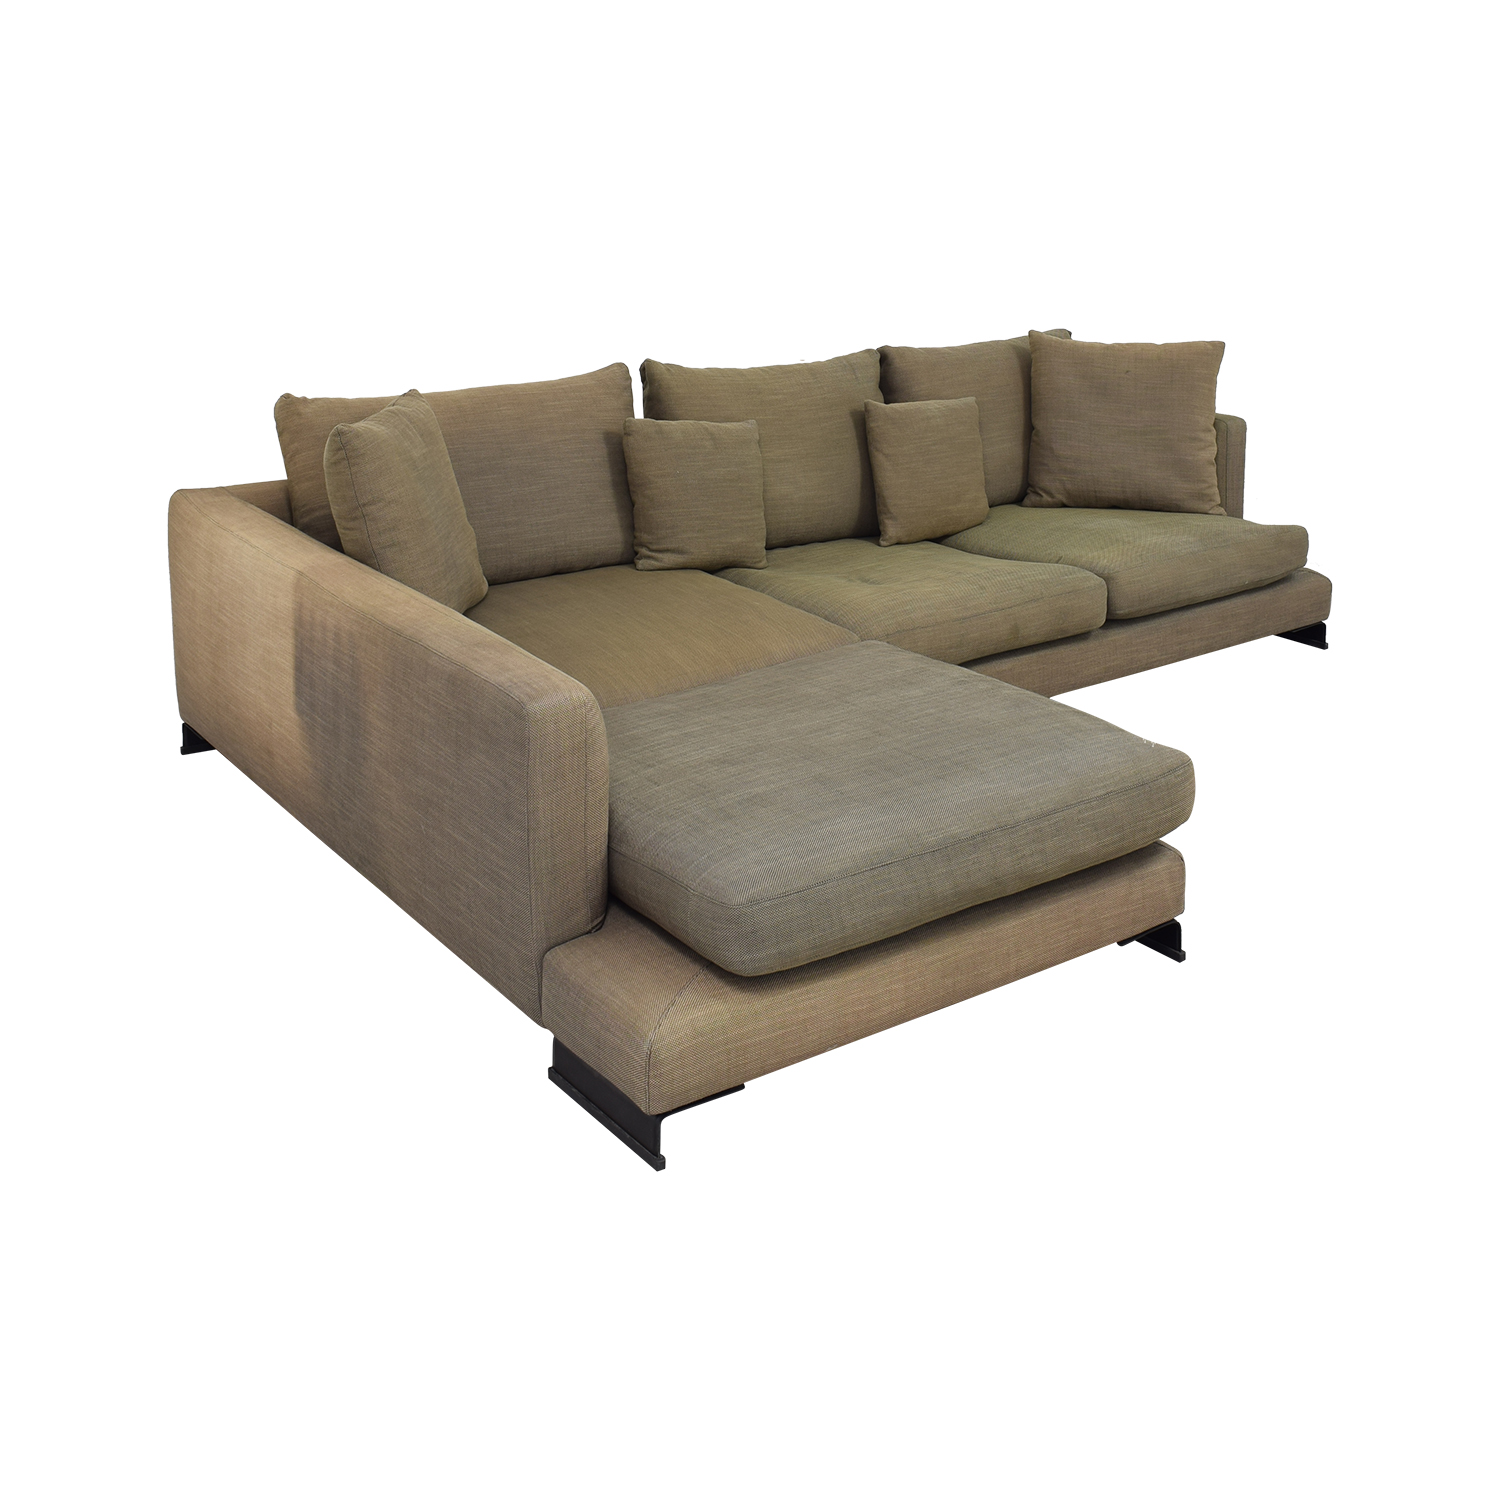 Camerich Camerich Lazy Time Sectional Sofa Sofas